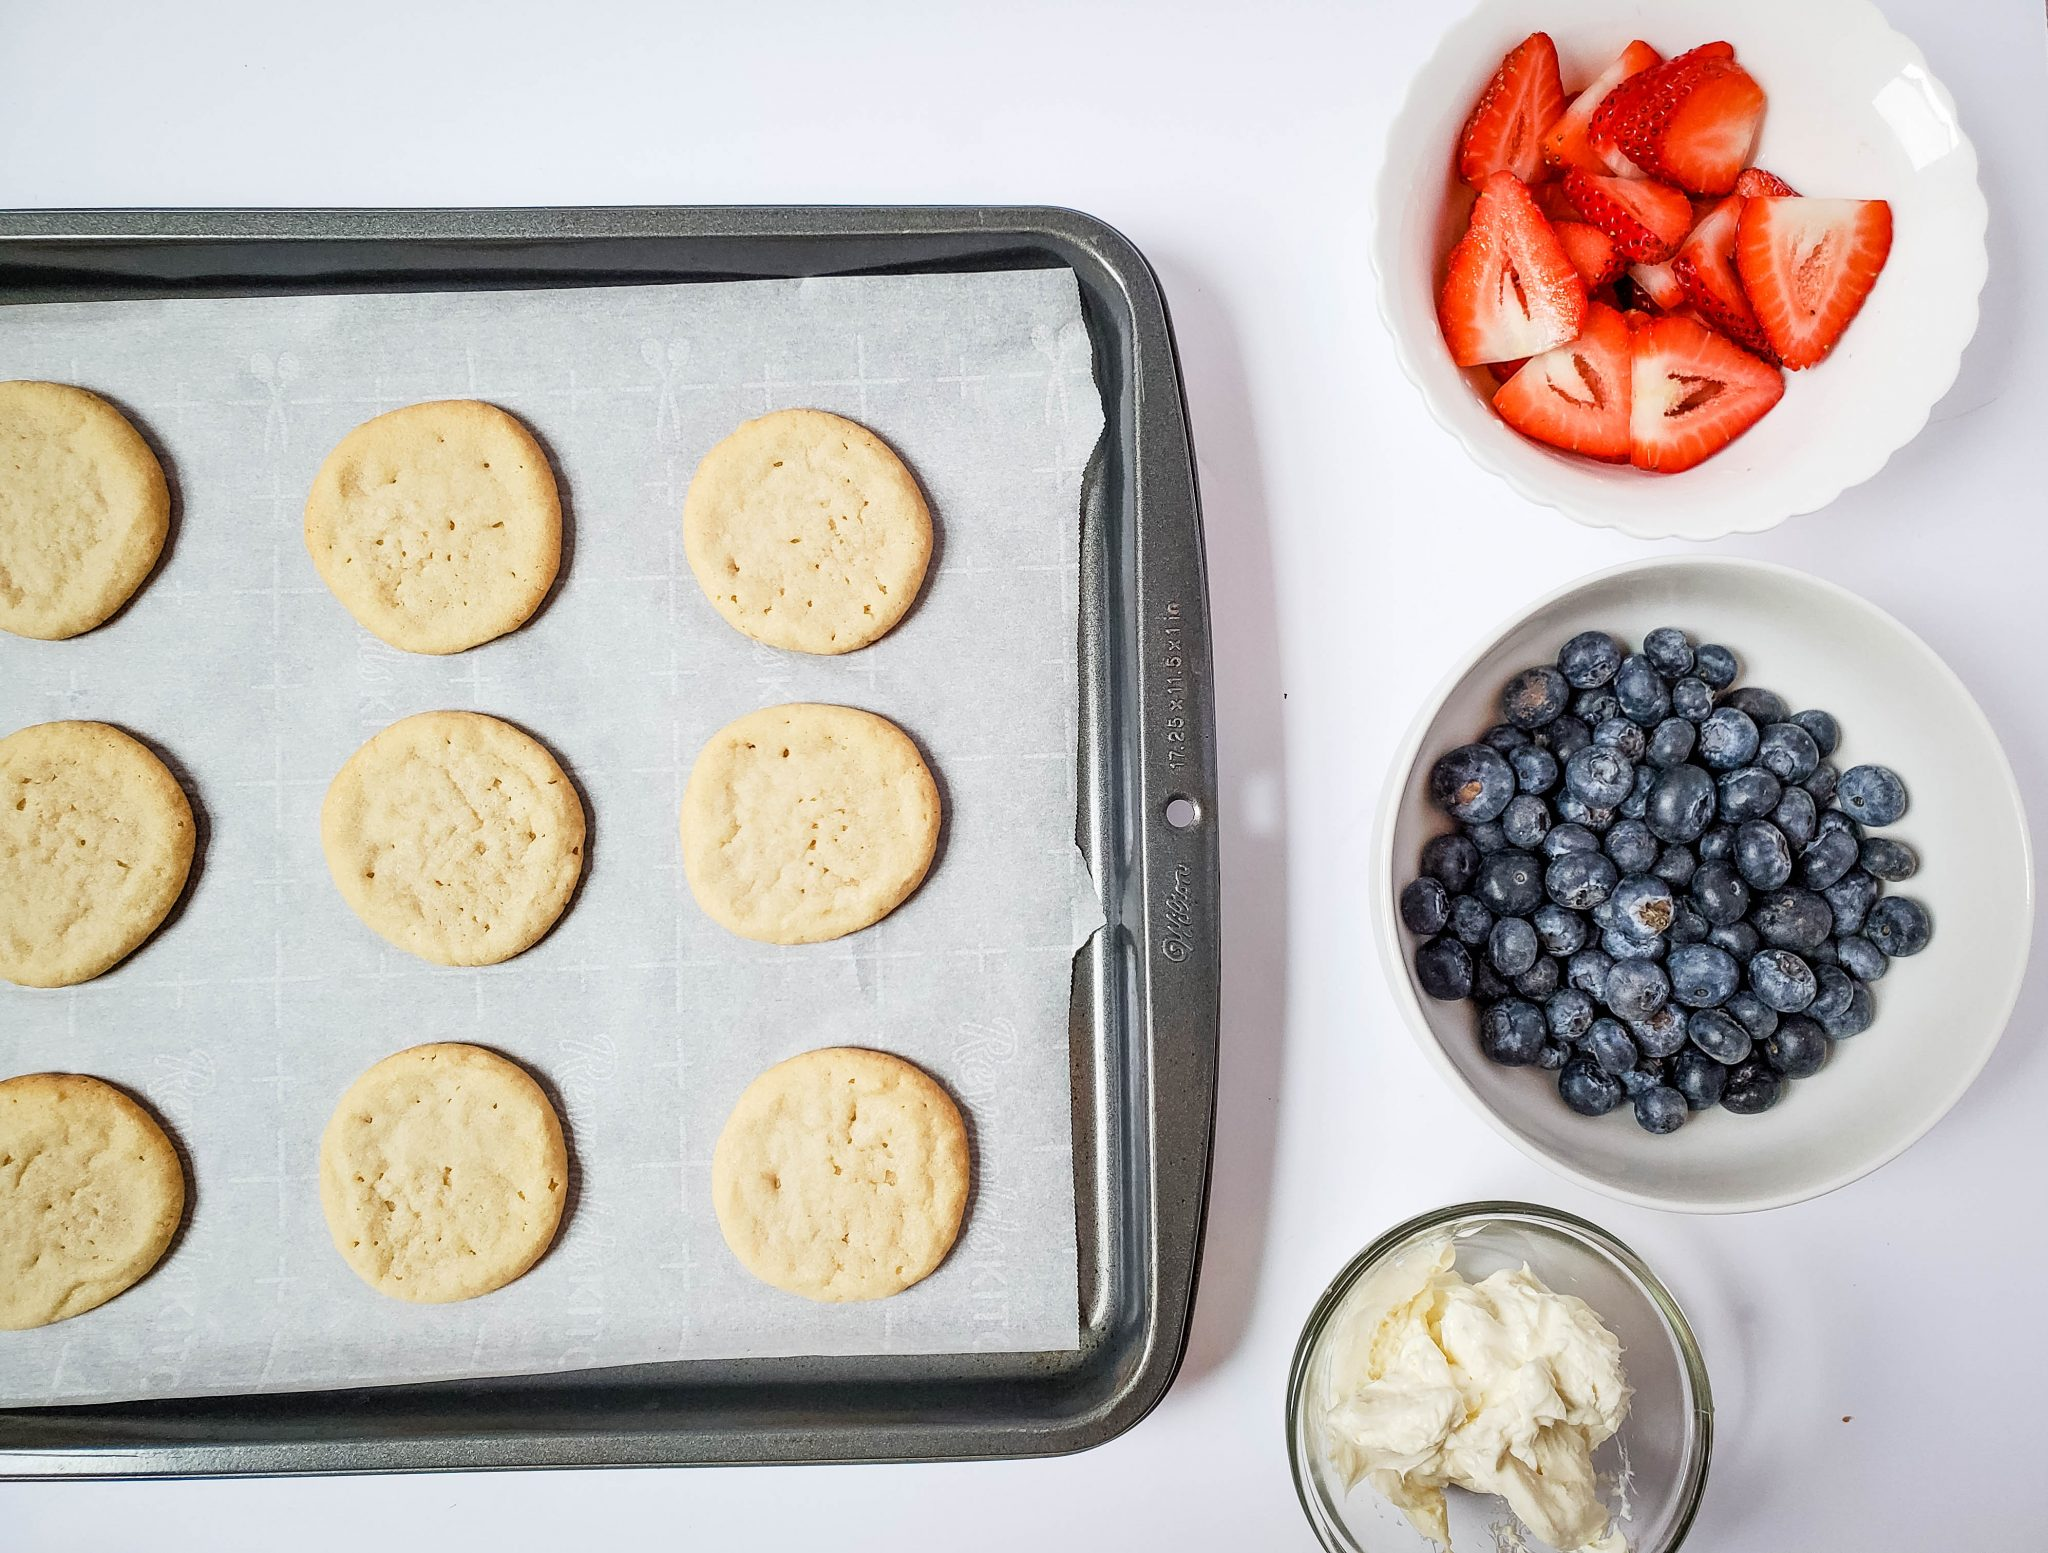 Sugar cookies on a parchment covered baking sheet, white bowl filled with strawberry slice, white bowl filled with blueberry slices, clear bowl filled with cream cheese frosting